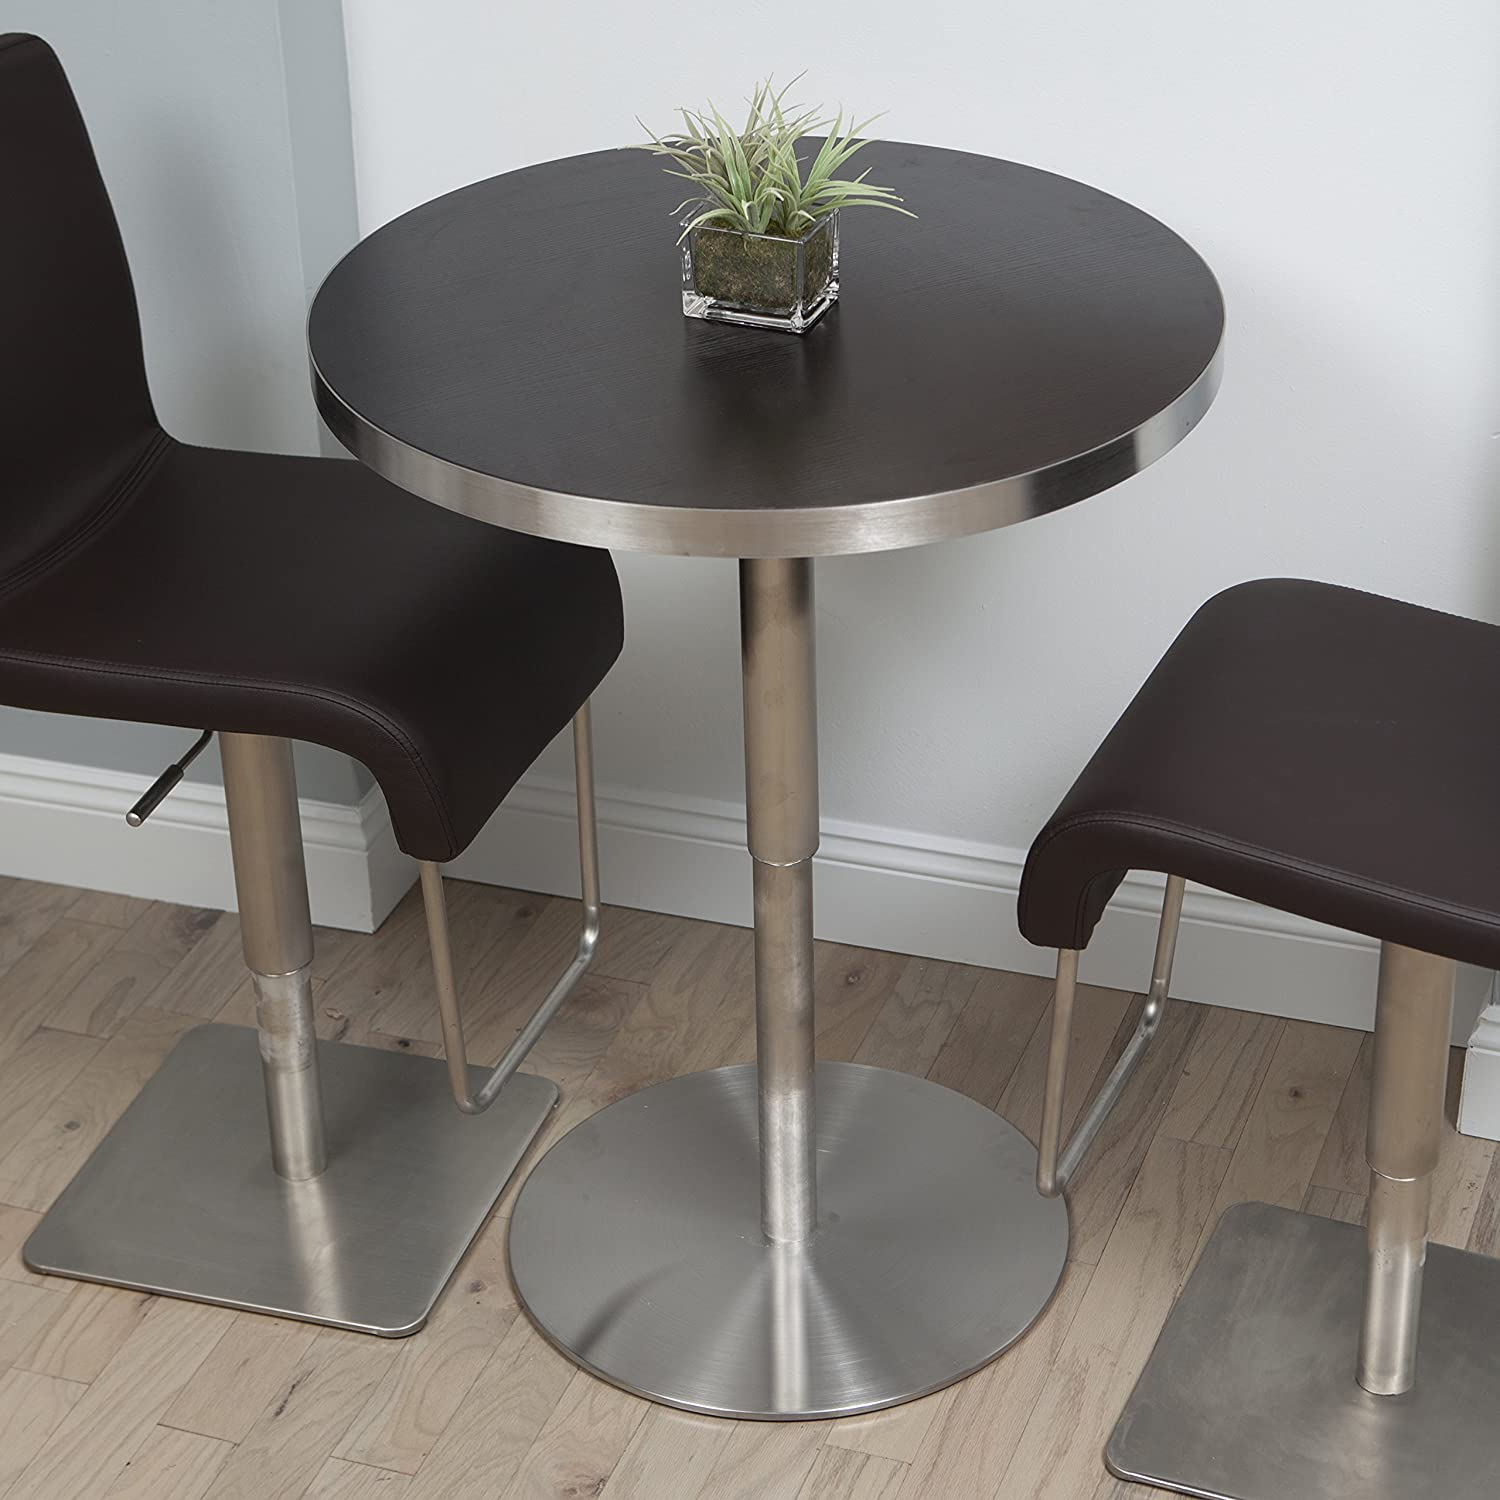 Amazoncom In The Mix MIX Brushed Stainless Steel Round Wood - Parsons pub table